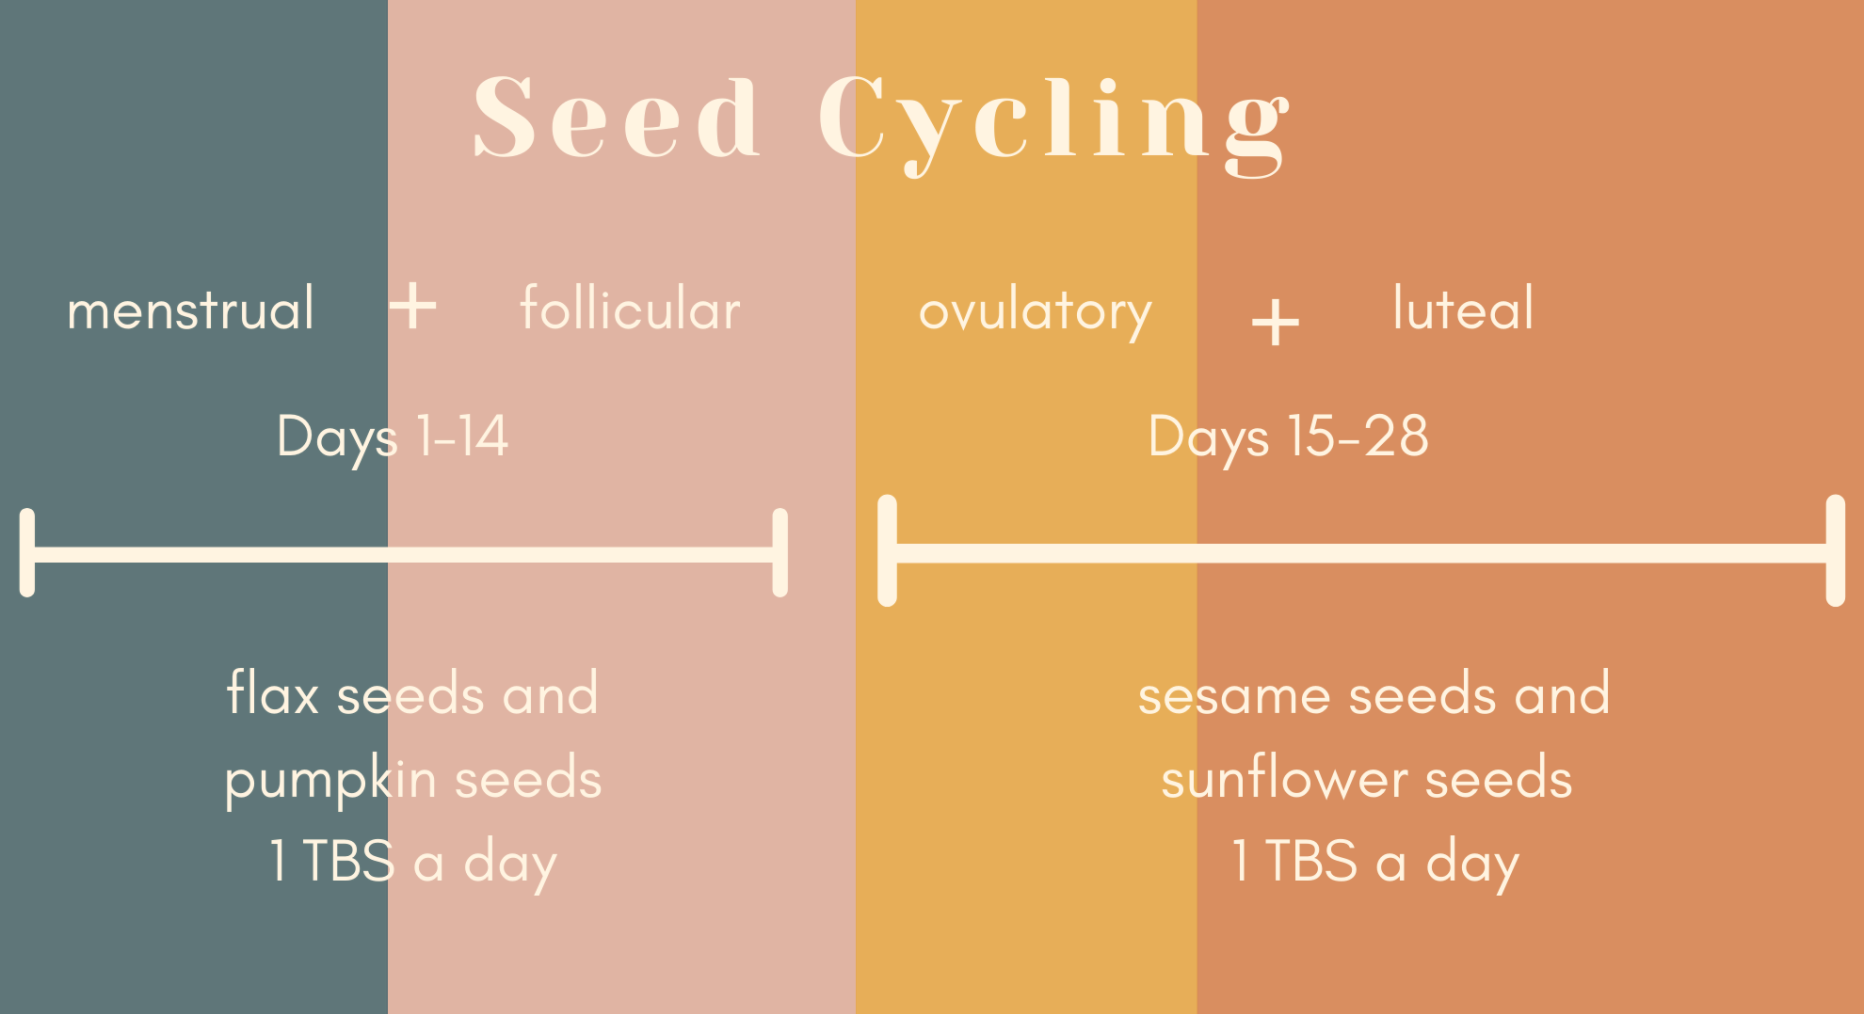 Graphic showing seed cycling and the phases